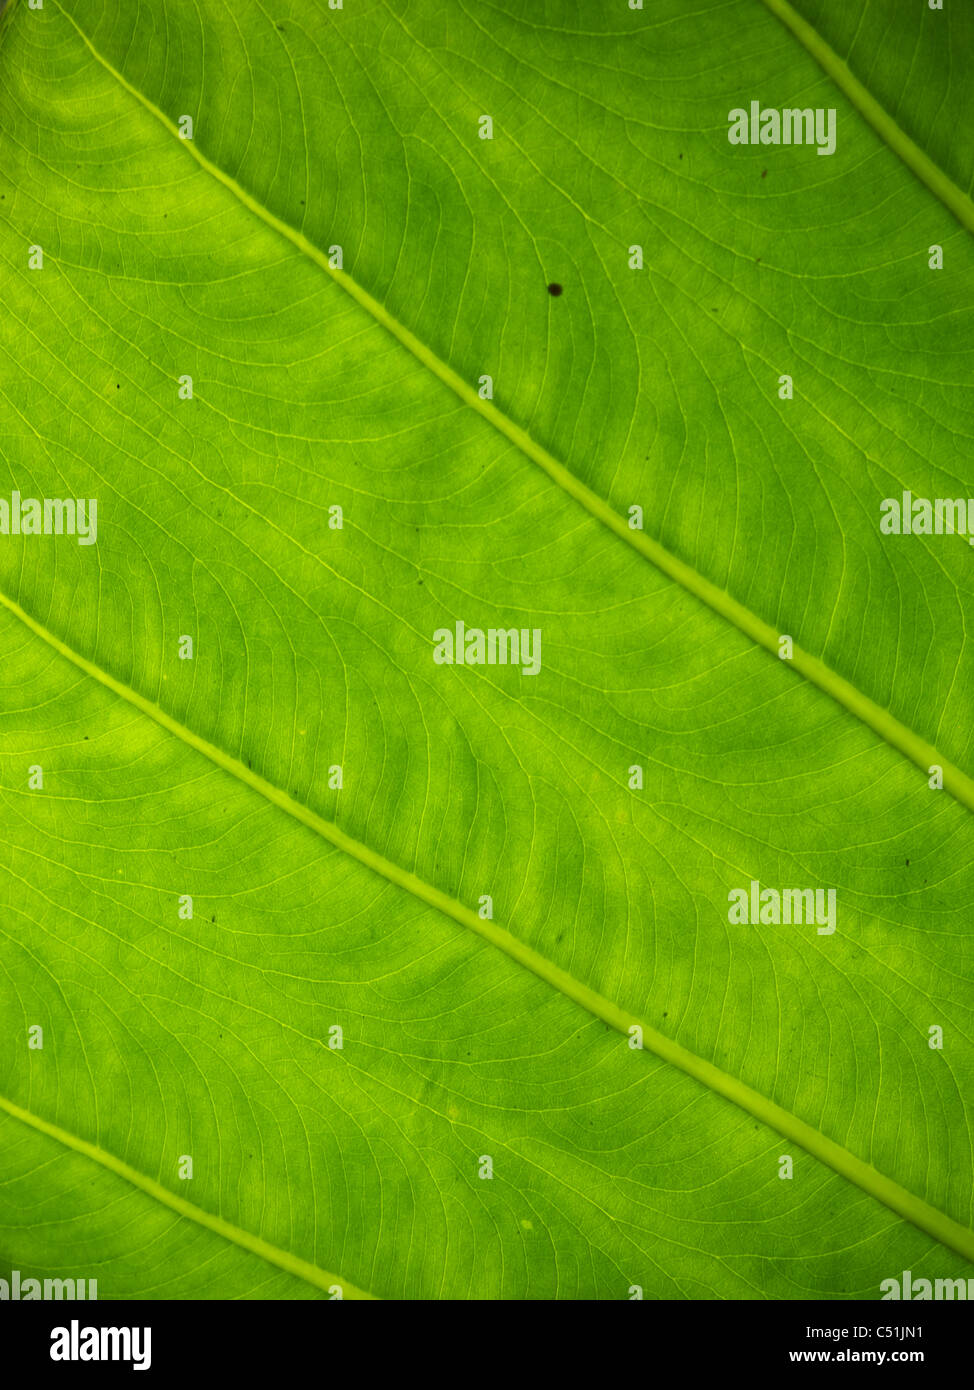 tight shot of palm leaf - Stock Image